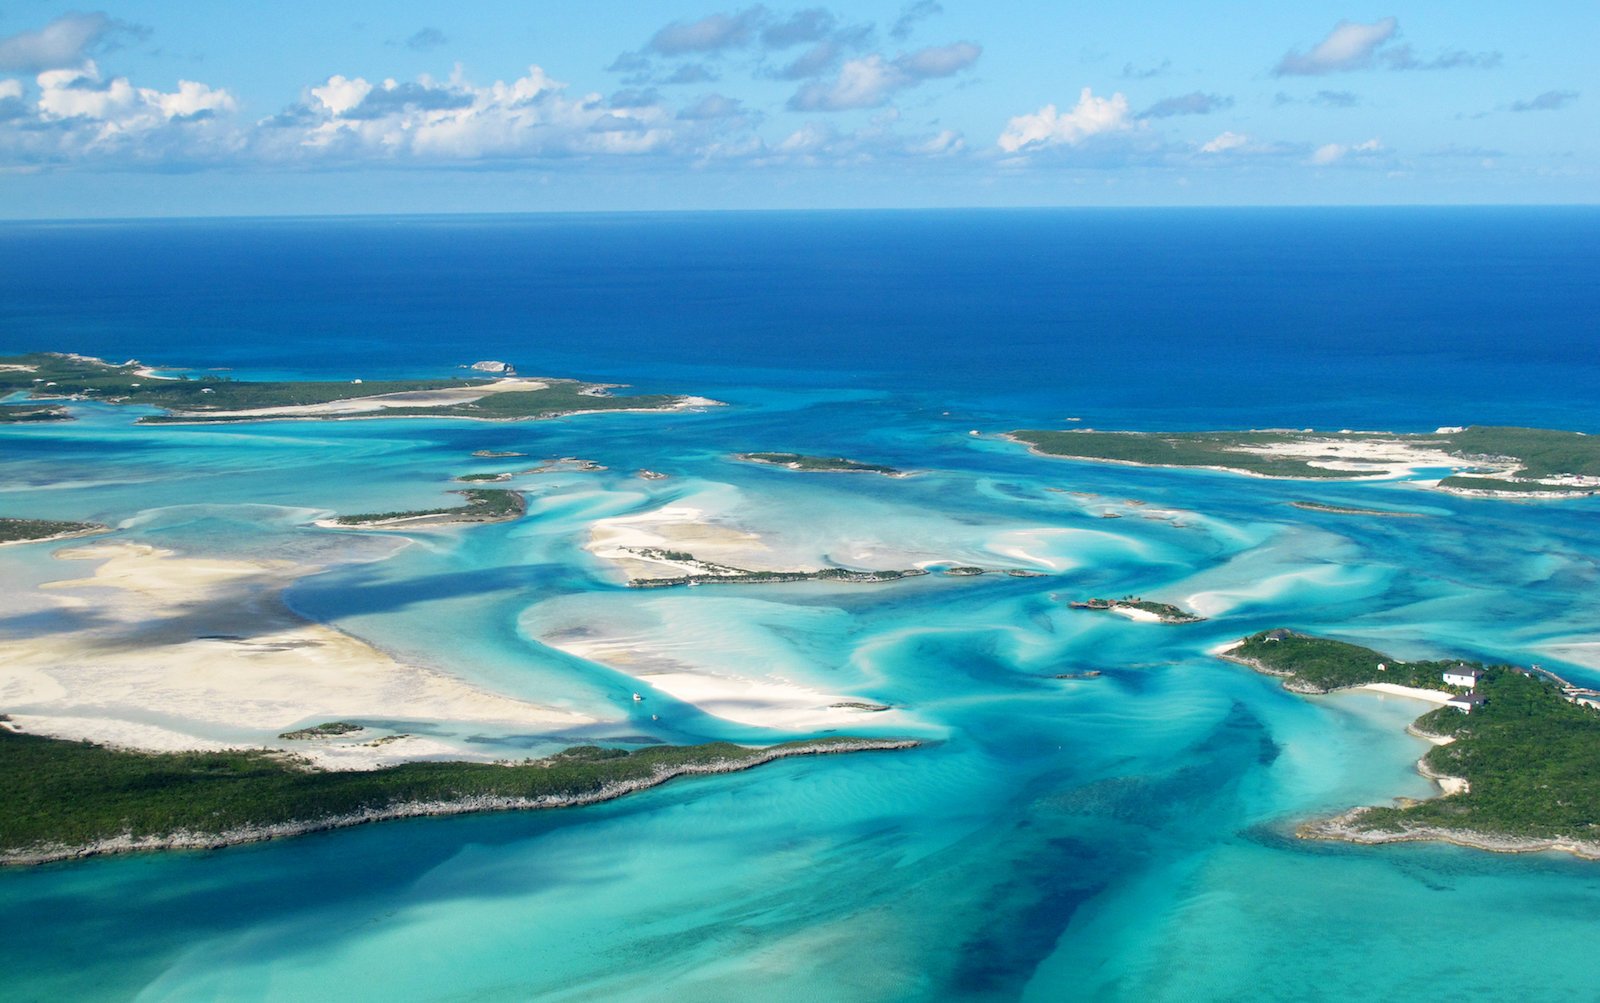 Aerial view of Exumas, Bahamas